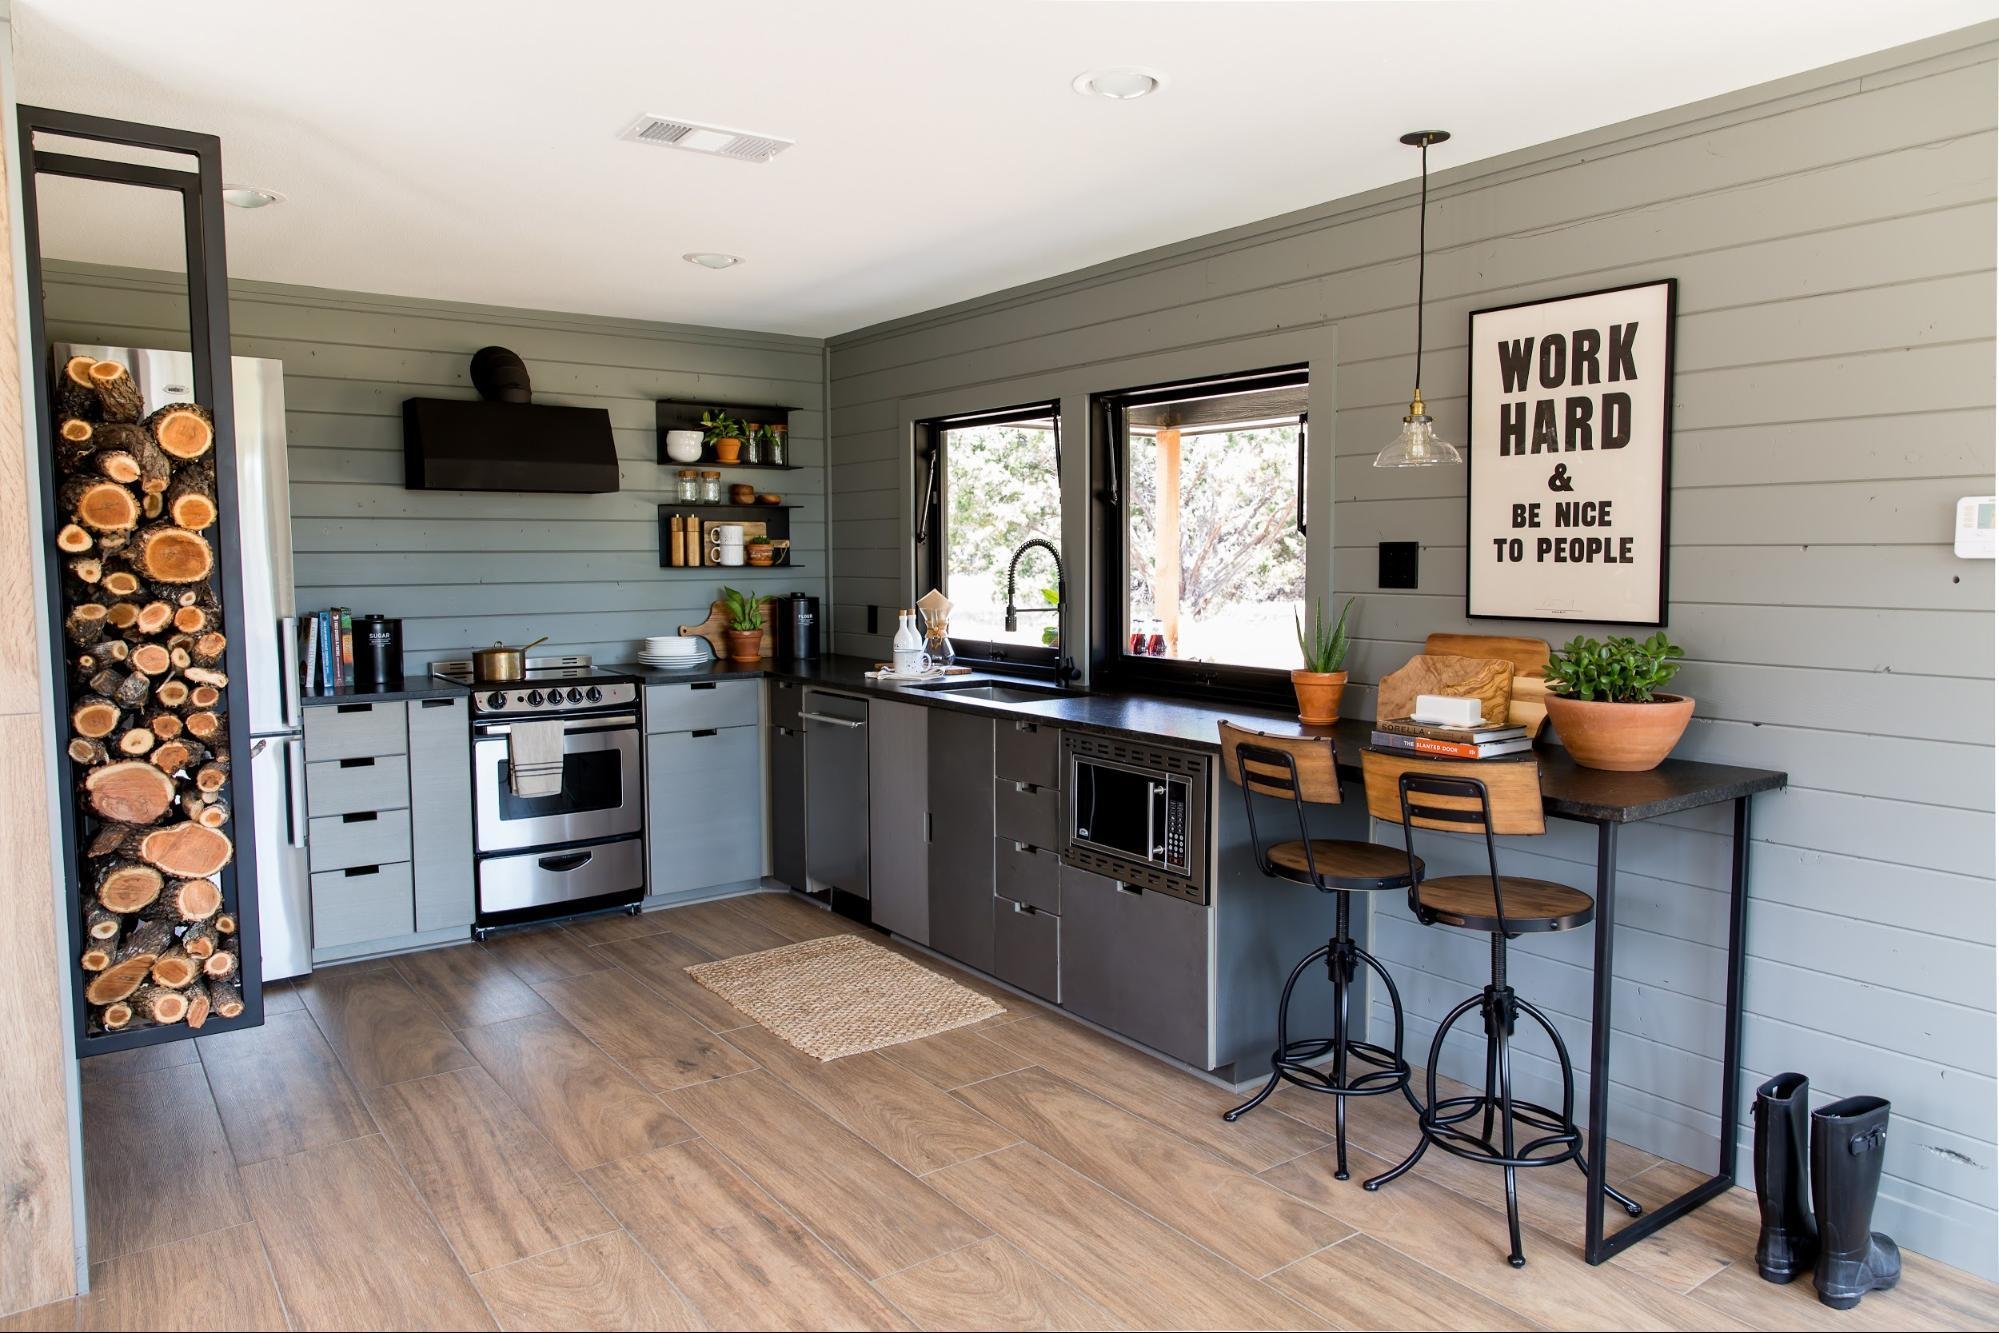 Joanna Gaines' Tips for Renovating RVs and Other Small Spaces